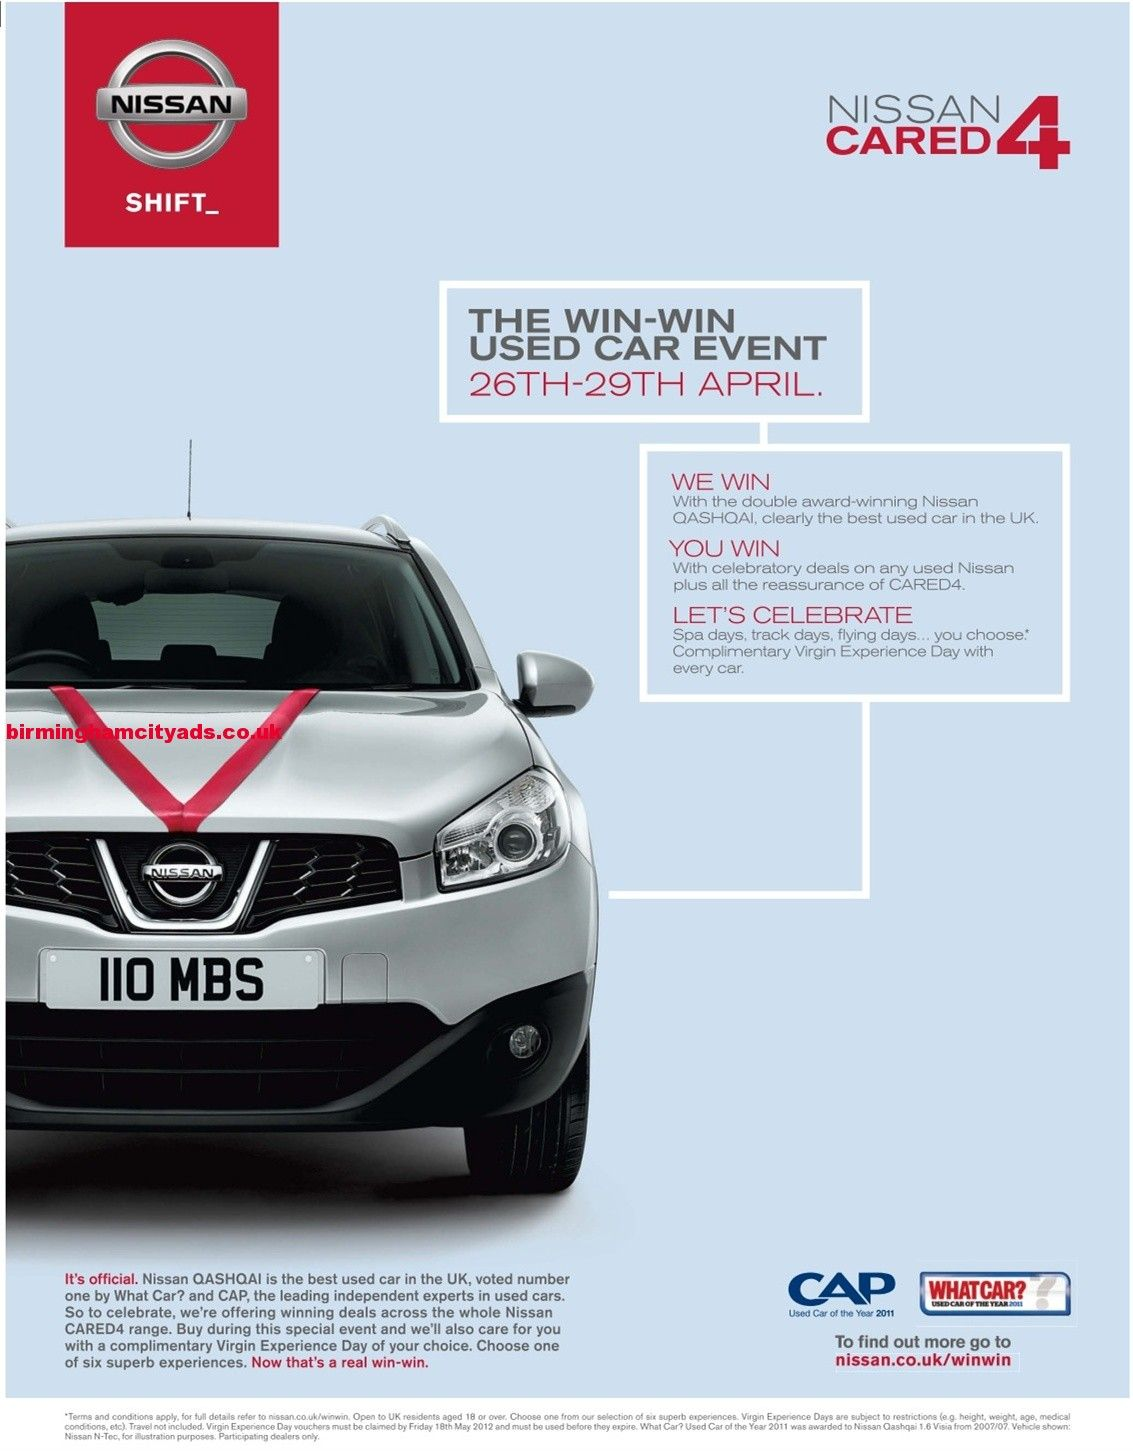 Nissan-Cared-4-The-Win-Used-Car-Event-Nissan-QASHQAI-Is-The-Best-CAr ...